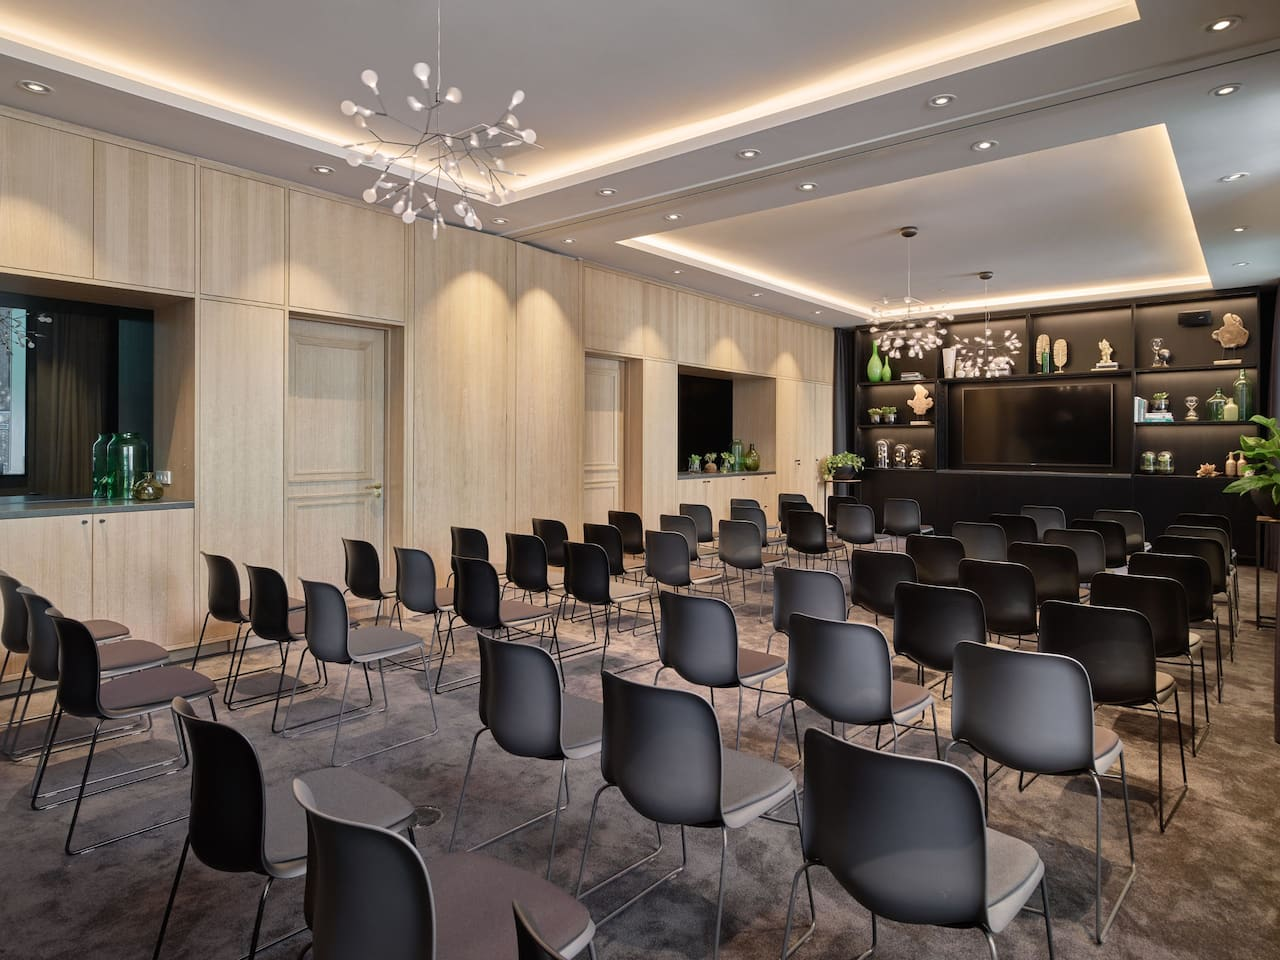 Hyatt Regency | Meeting room A & B